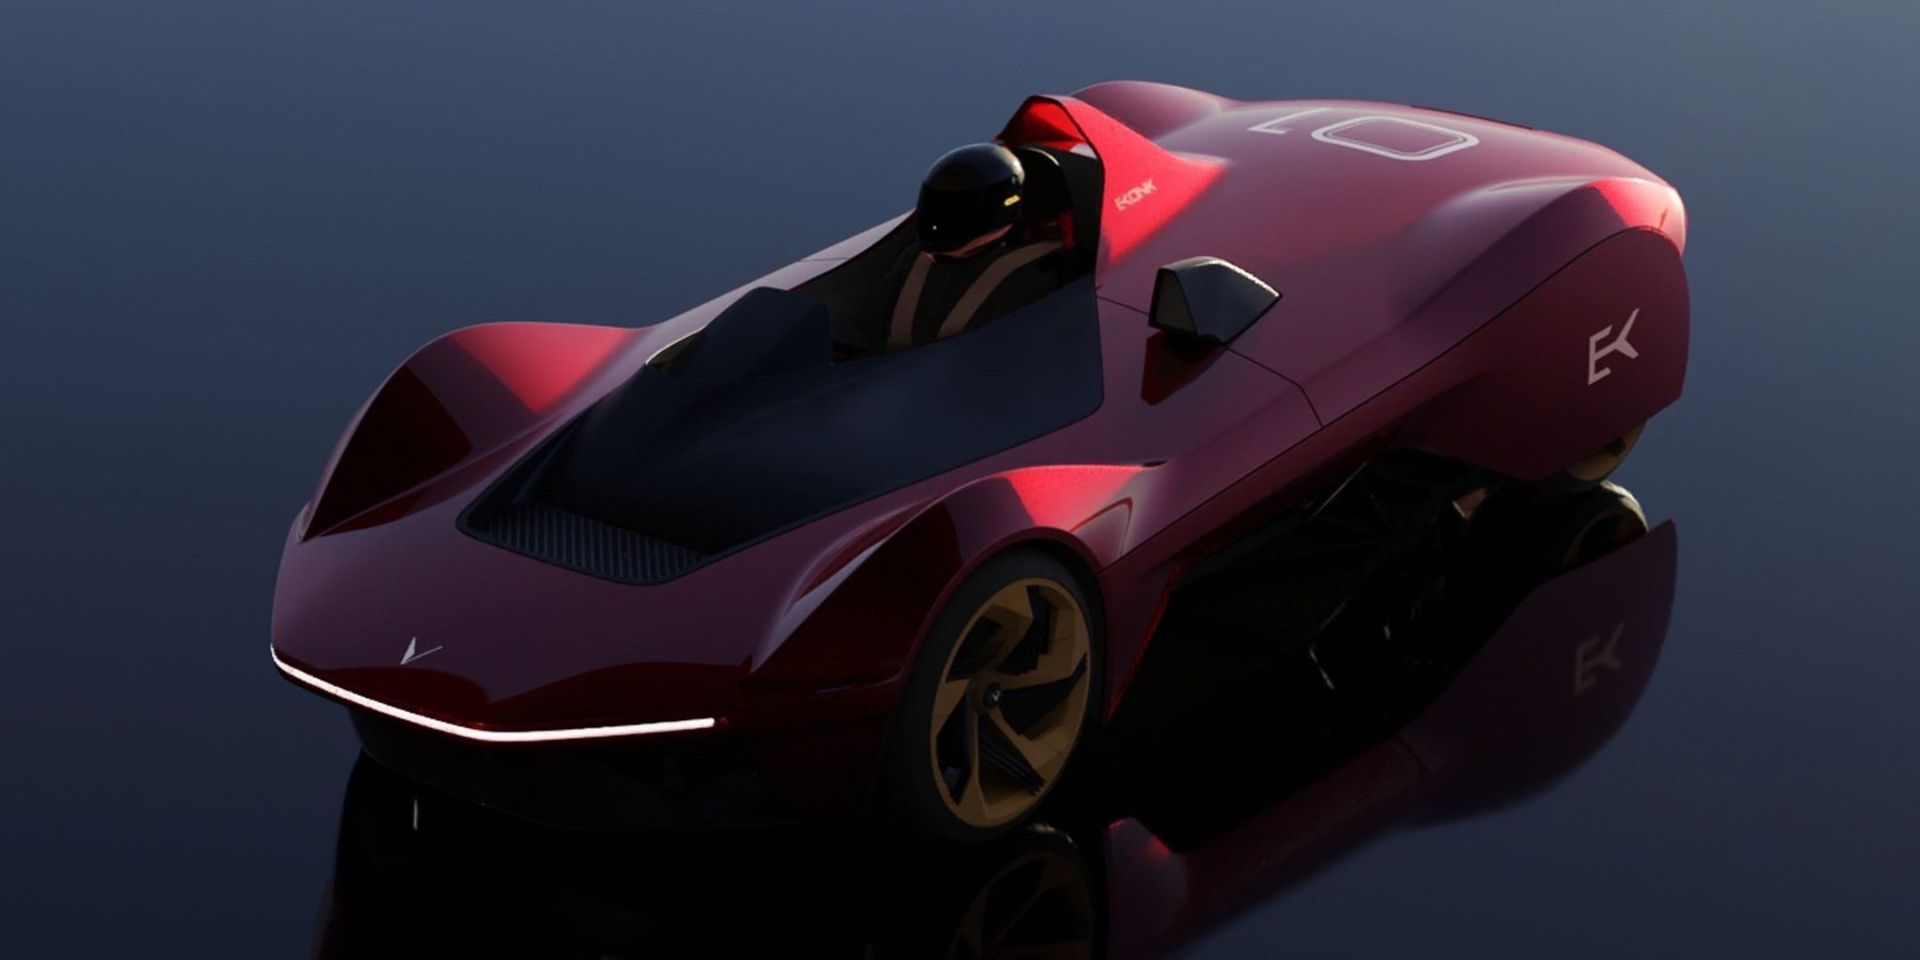 Vazirani returns with electric speedster that's lighter than a Miata